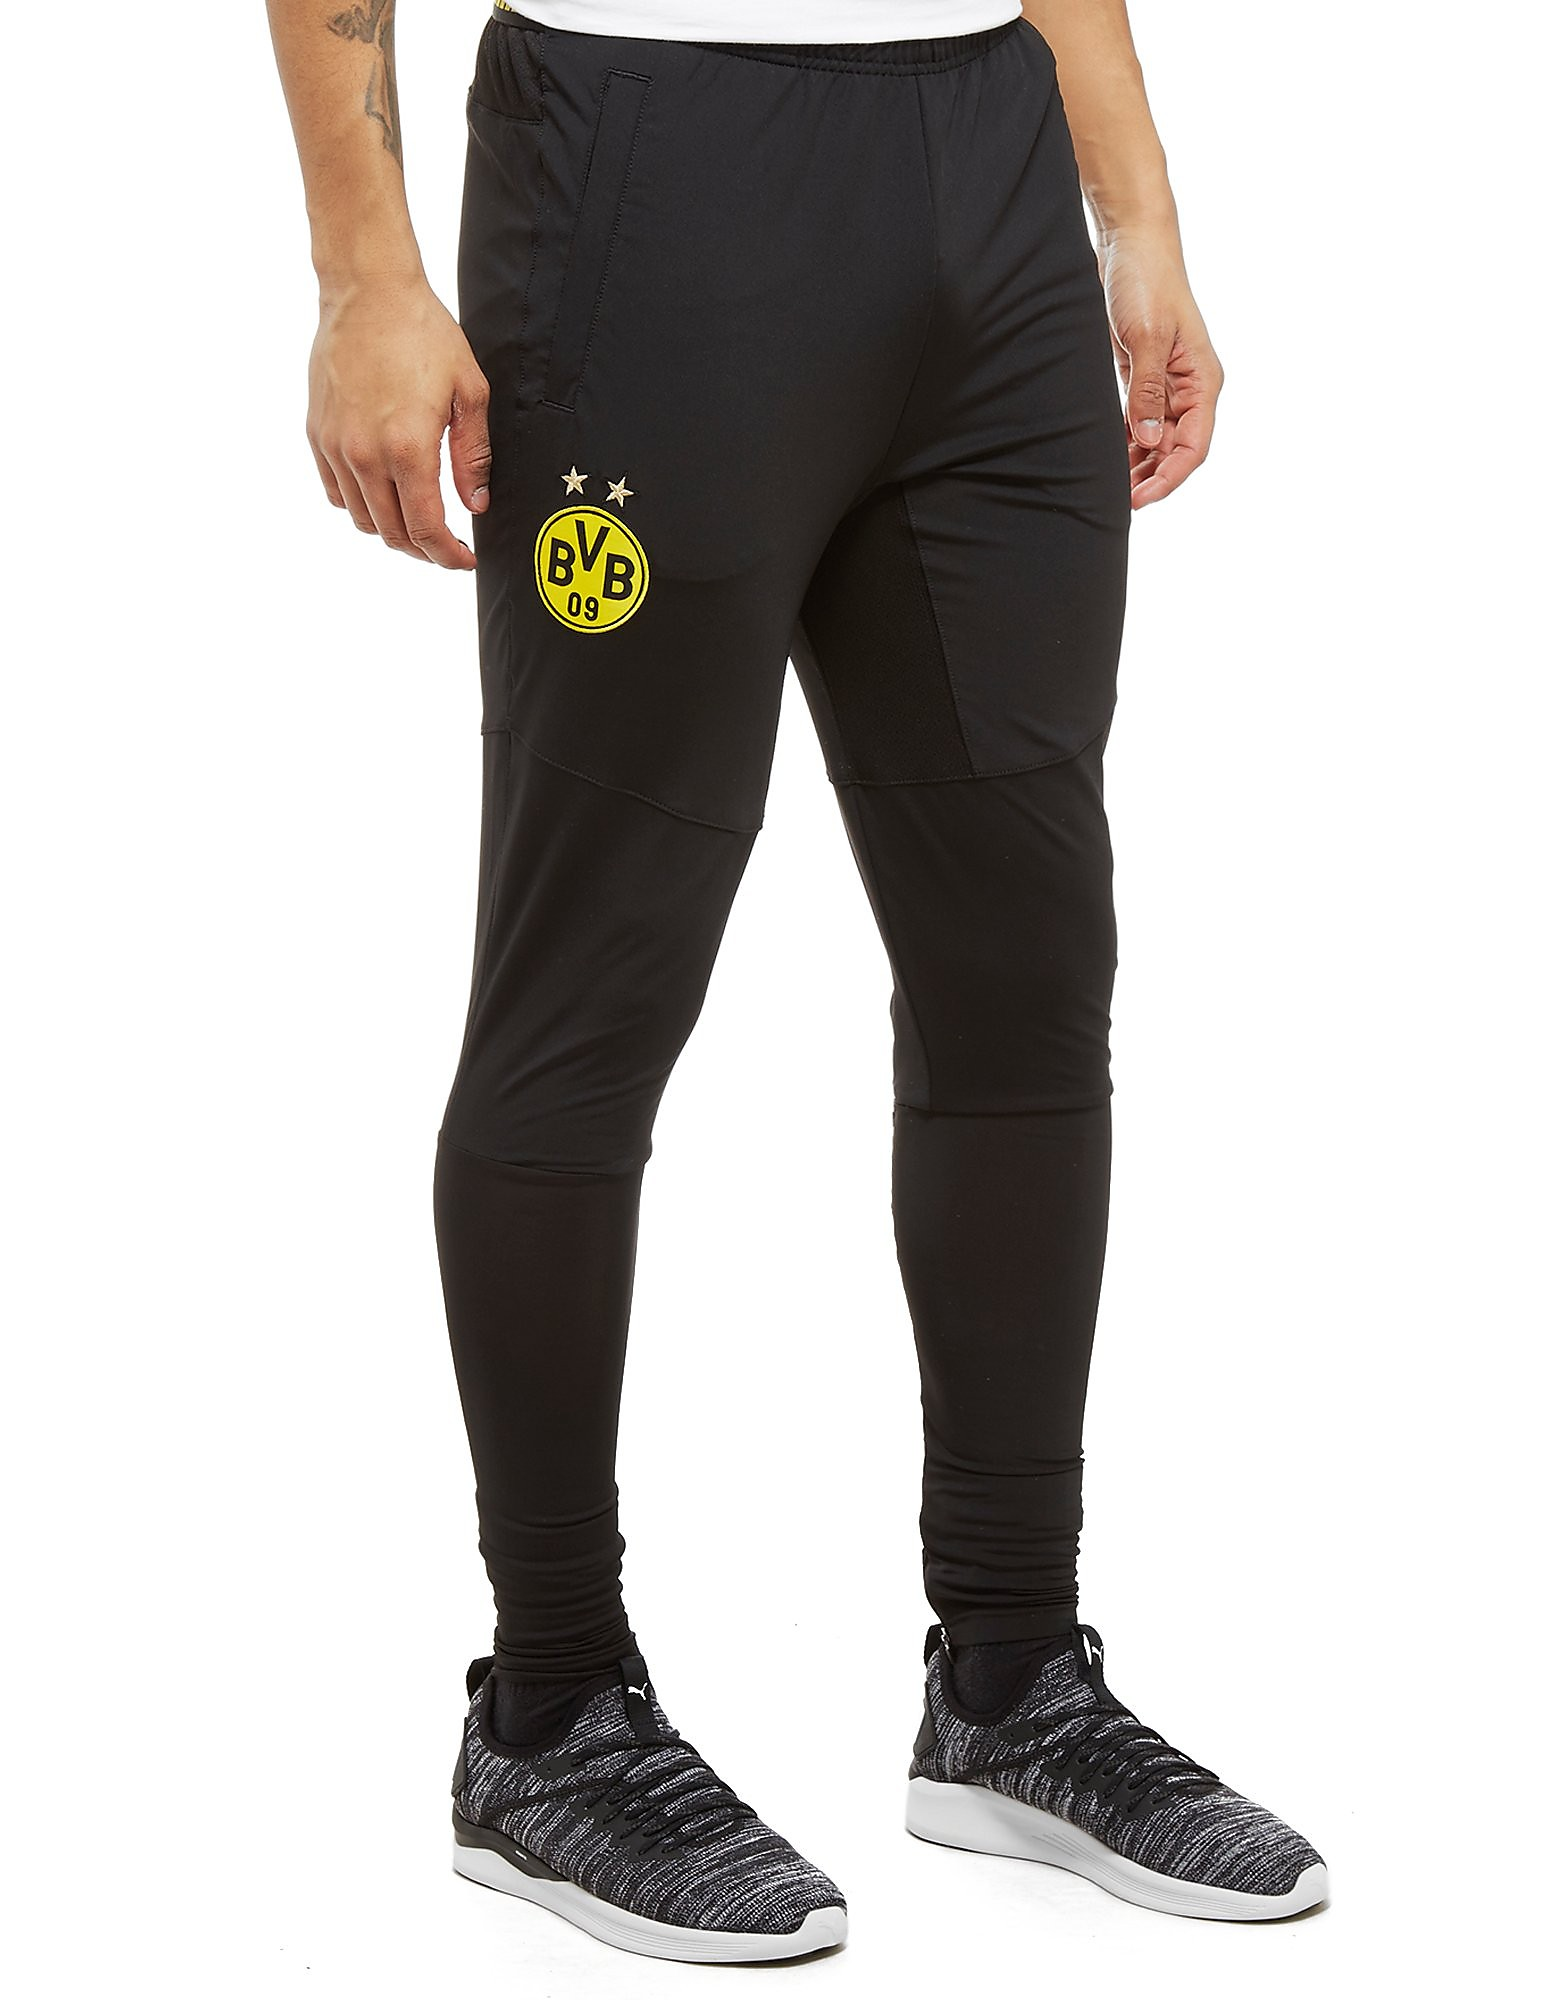 PUMA Borussia Dortmund 2018 Training Pants